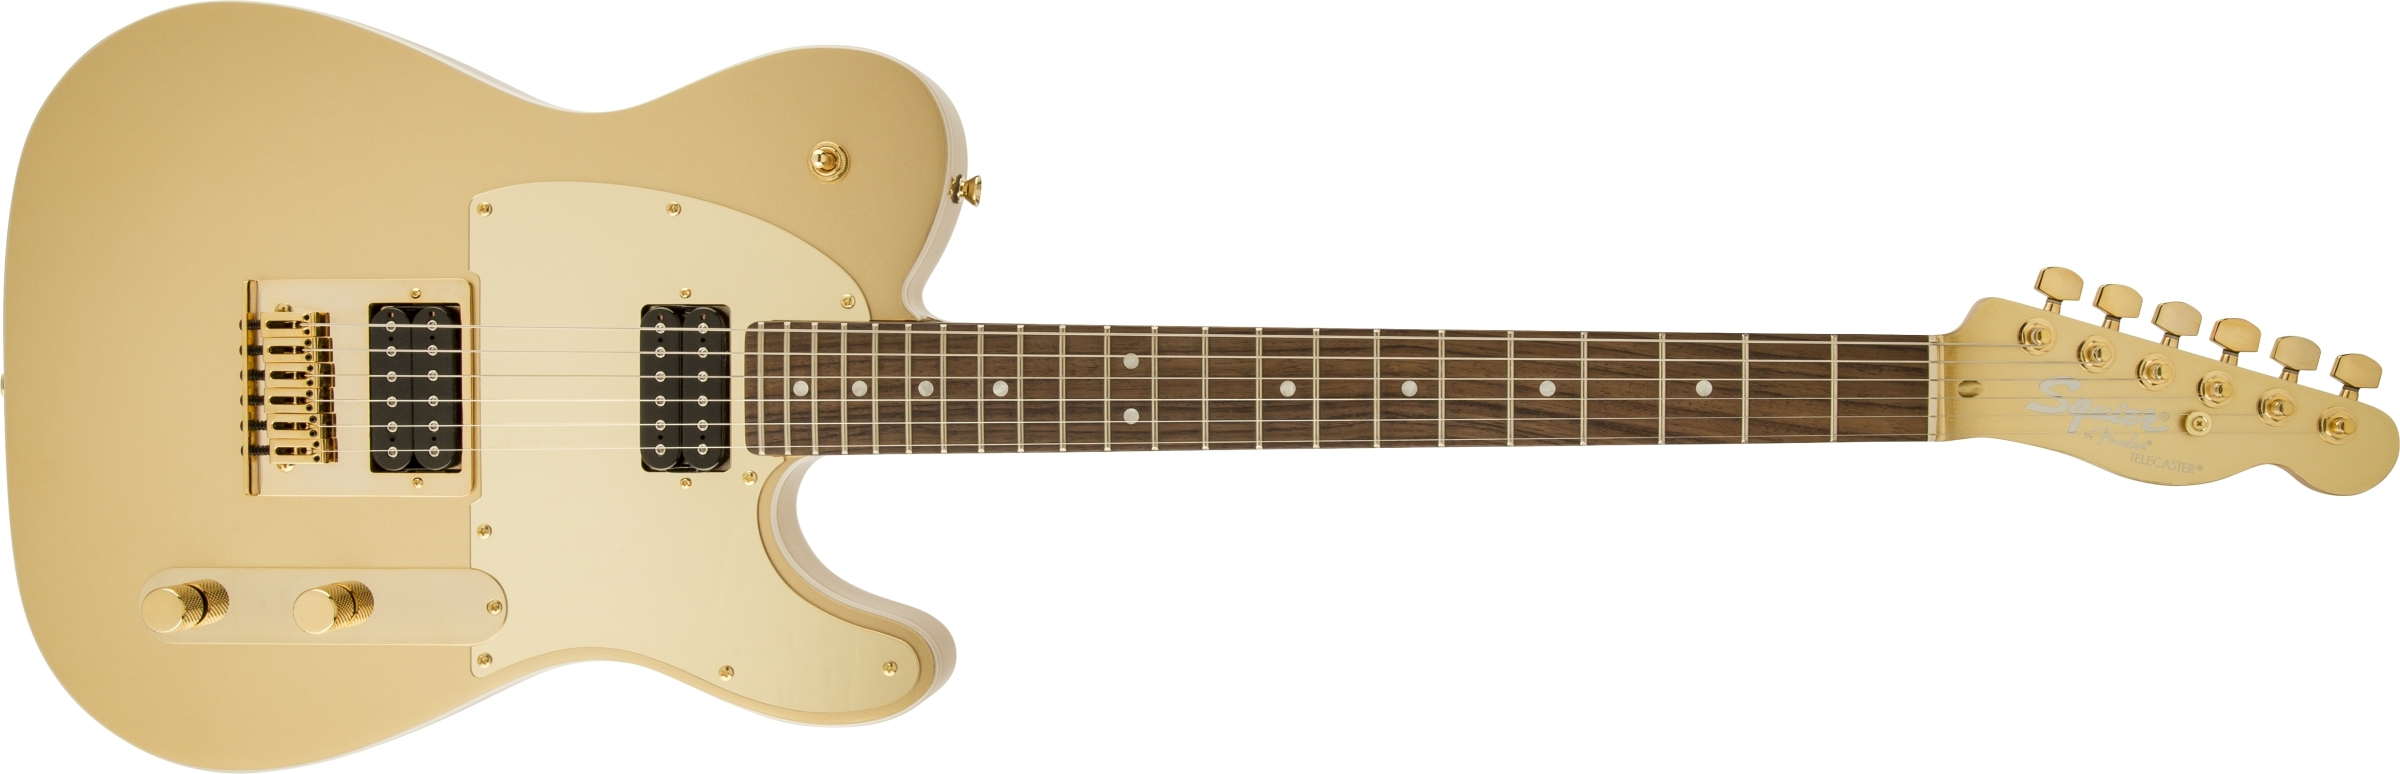 J5 Telecaster®   Squier Electric Guitars on